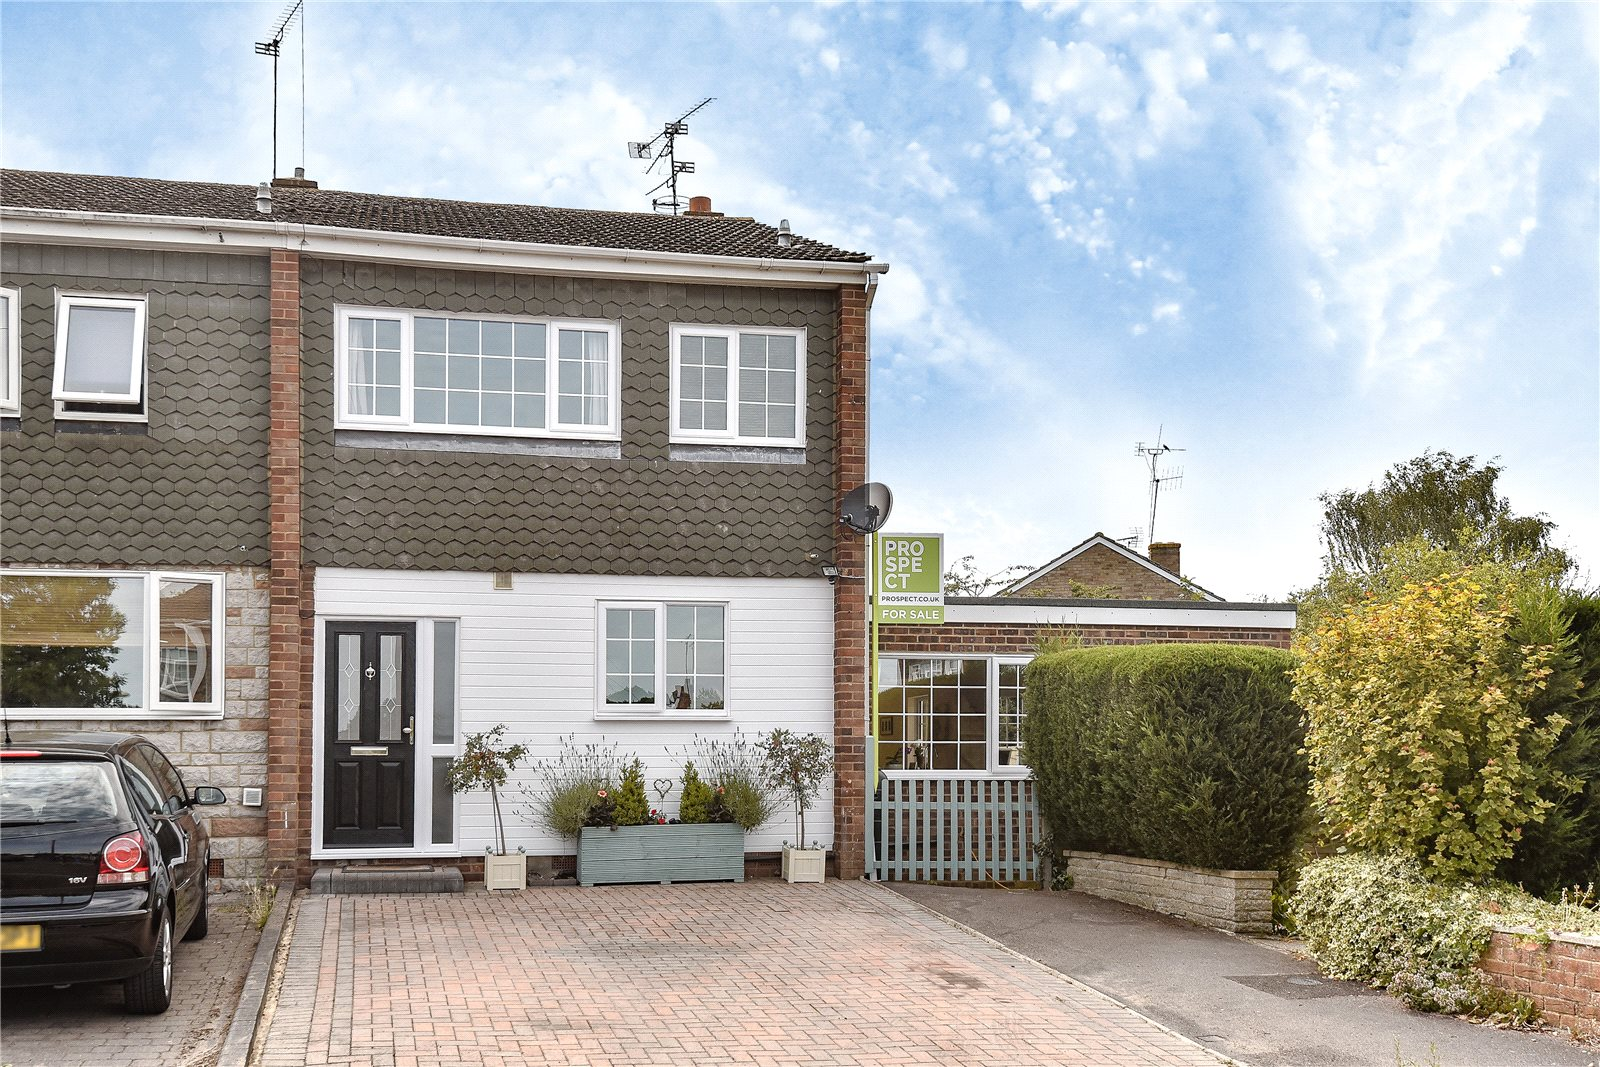 3 Bedrooms End Of Terrace House for sale in Connaught Close, Yateley, Hampshire, GU46